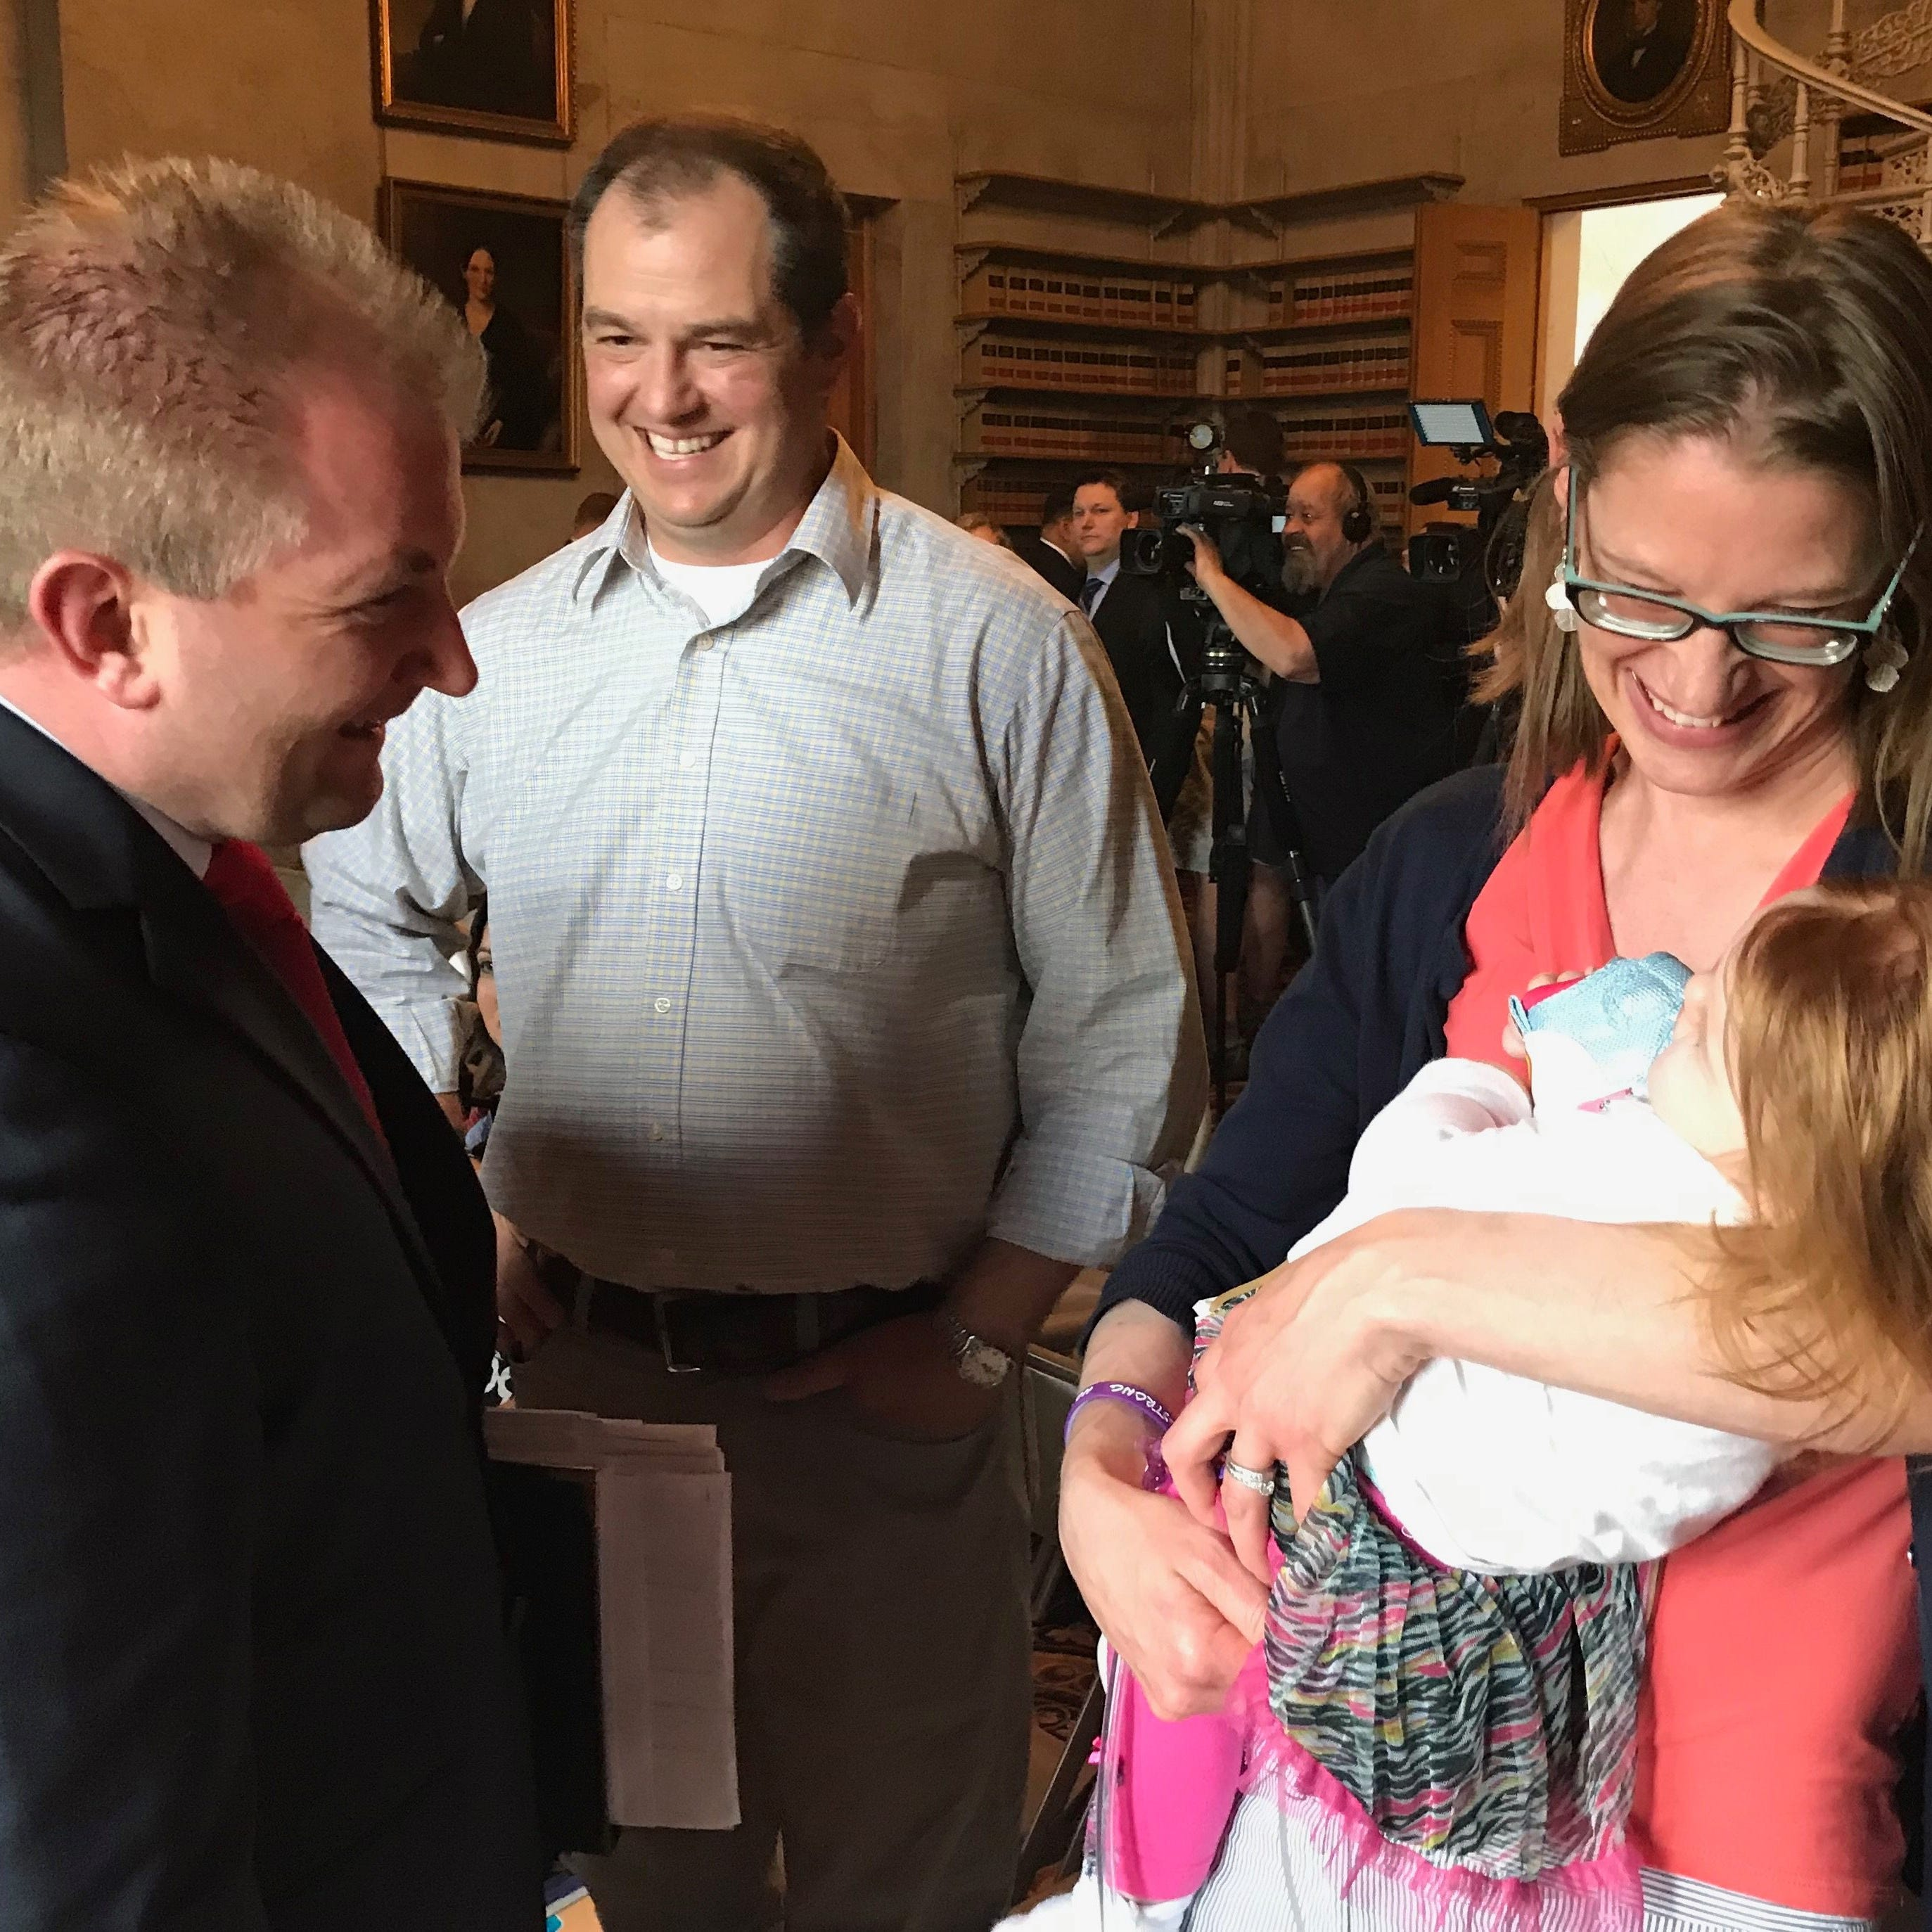 After closed-door talks, lawmakers agree to fully fund Medicaid waiver for disabled children